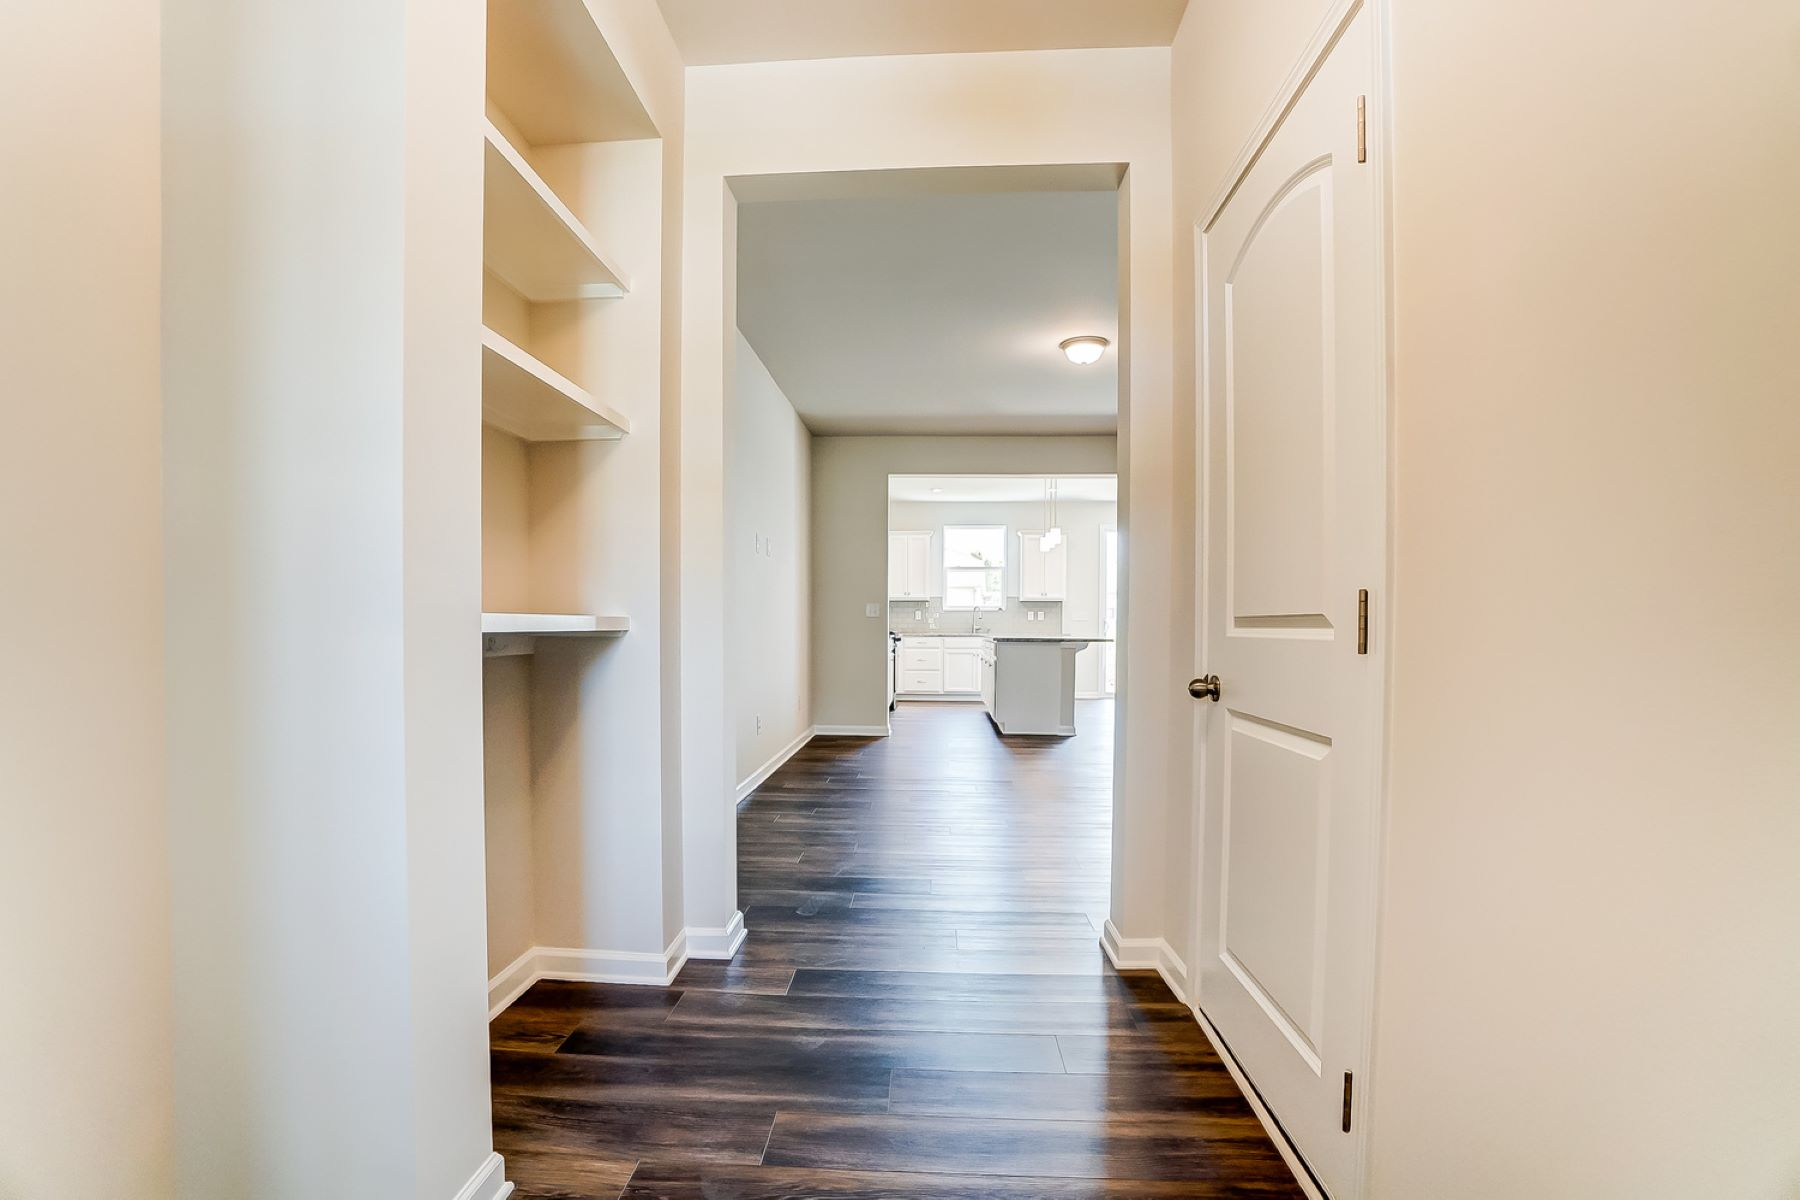 Brooke Plan Foyer at Galloway Park in Charlotte North Carolina by Mattamy Homes